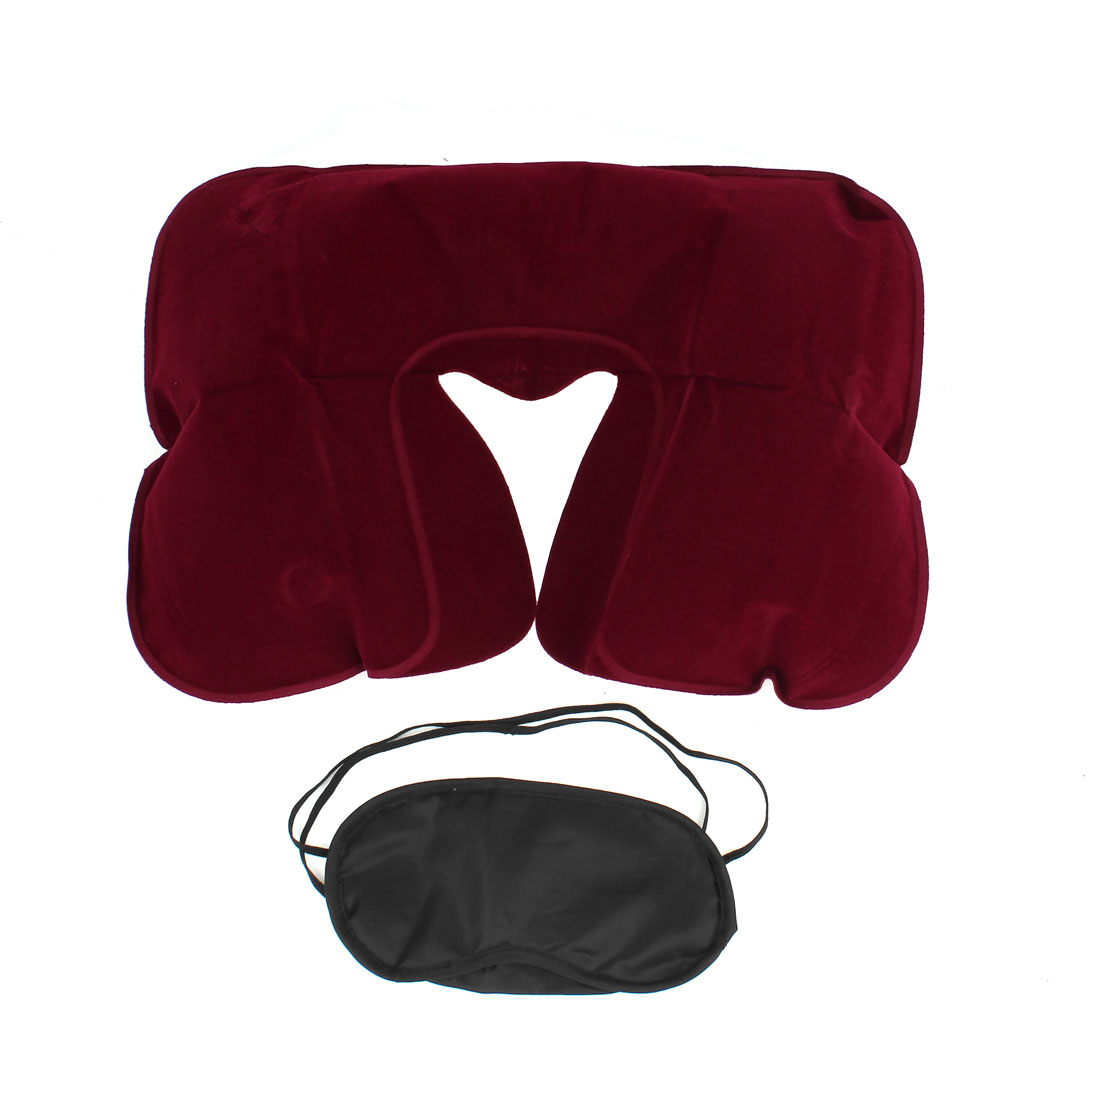 Unique Bargains Air Pillow + Eyeshade + Ear Plug Relaxing Set Package 3 In 1